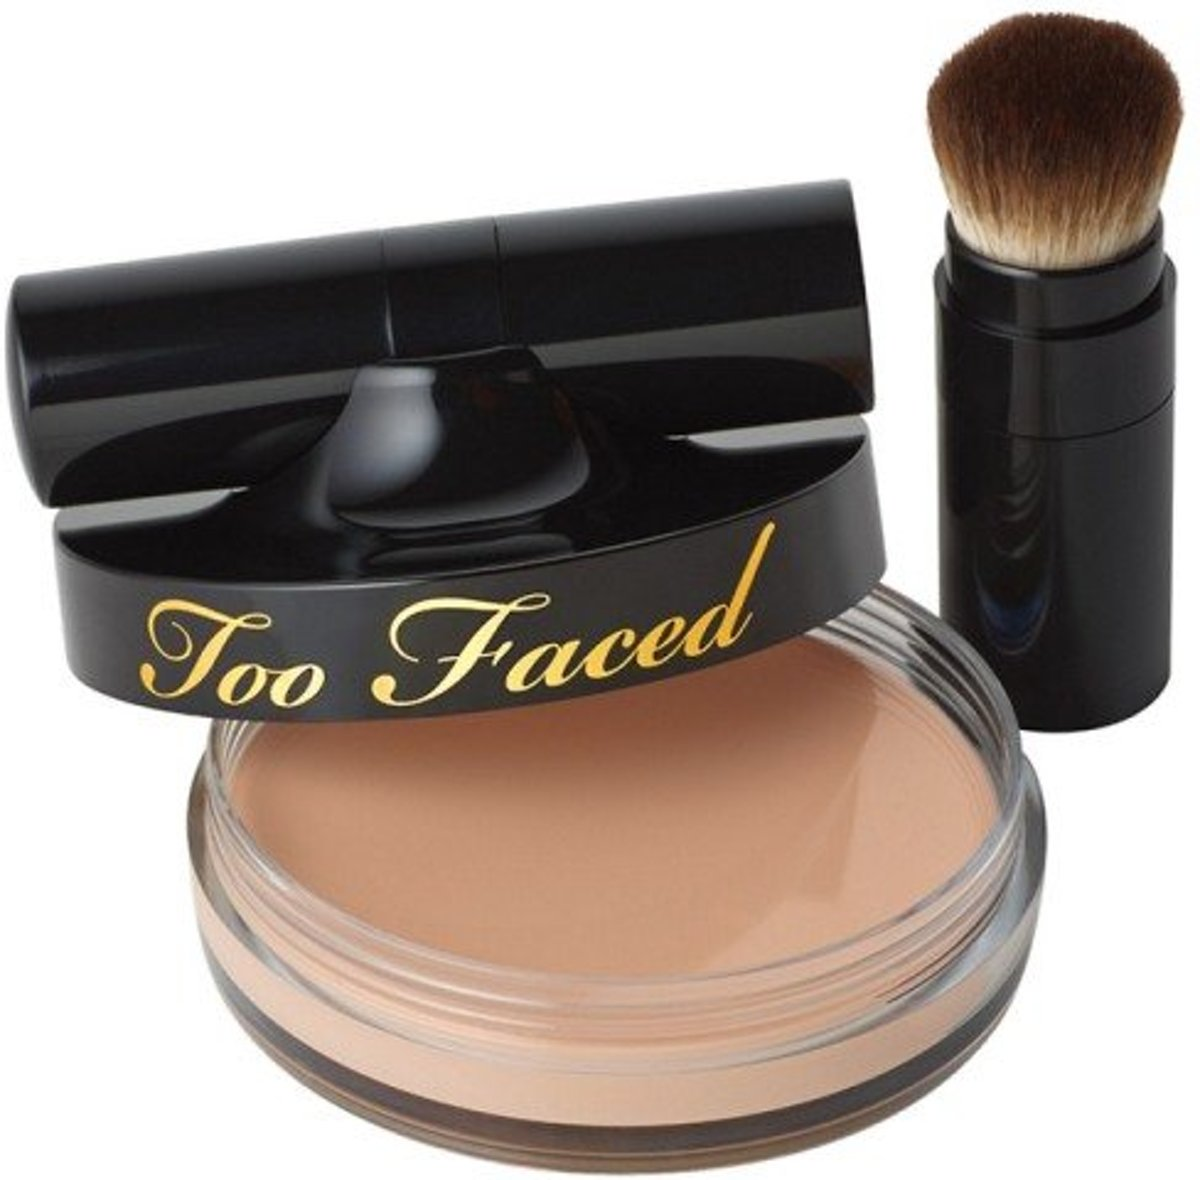 Air Buffed BB Creme Complete Makeup - Nude Glow